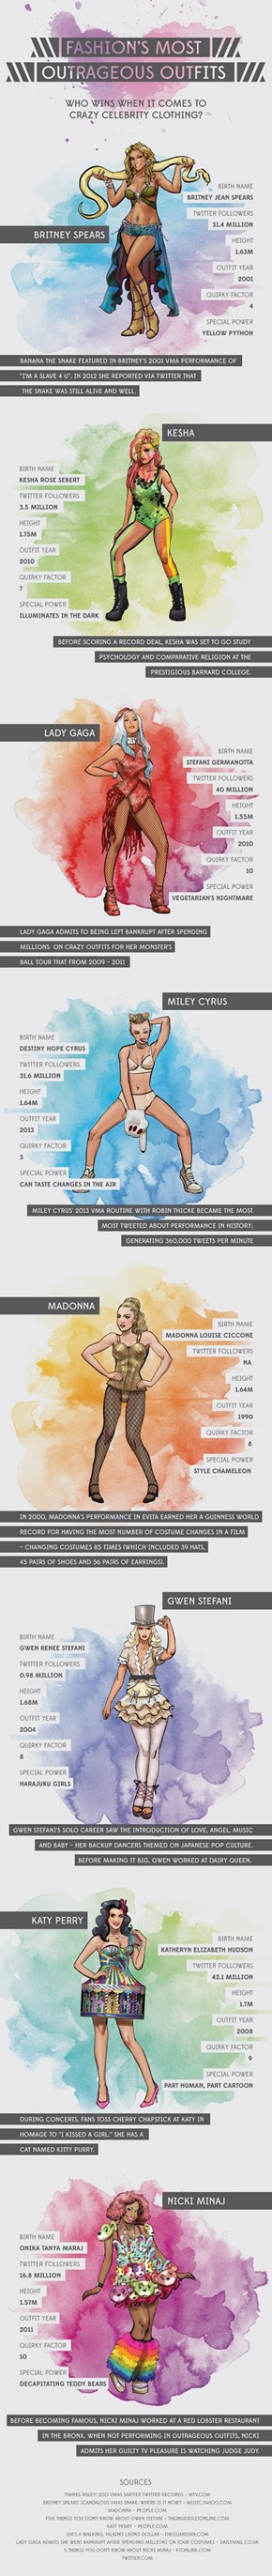 Fashion's Most Outrageous Outfits [Infographic]